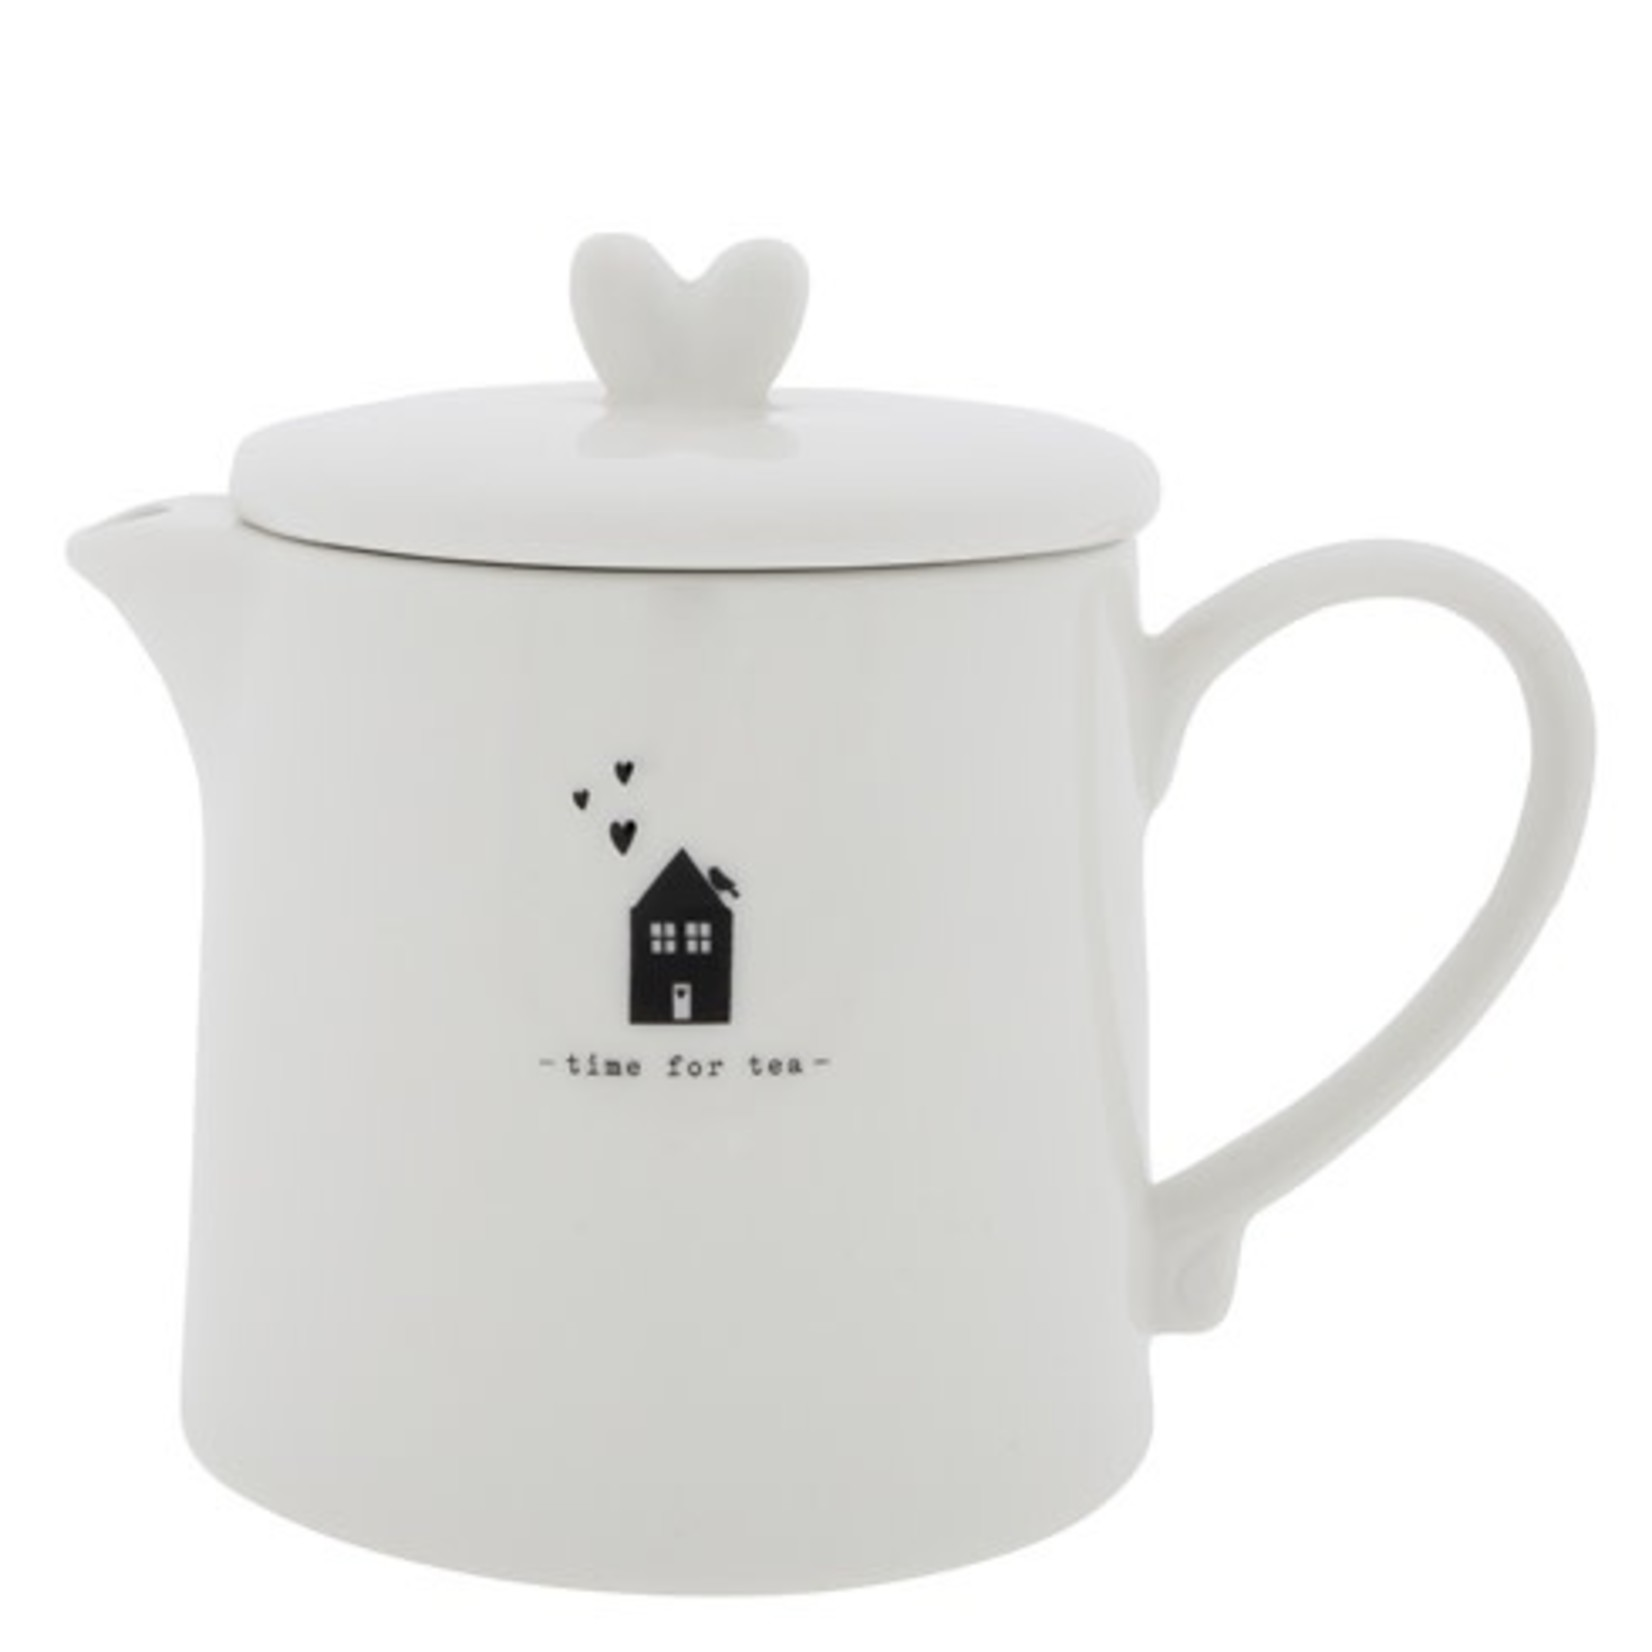 Bastion Collections Teapot Time for Tea white/black